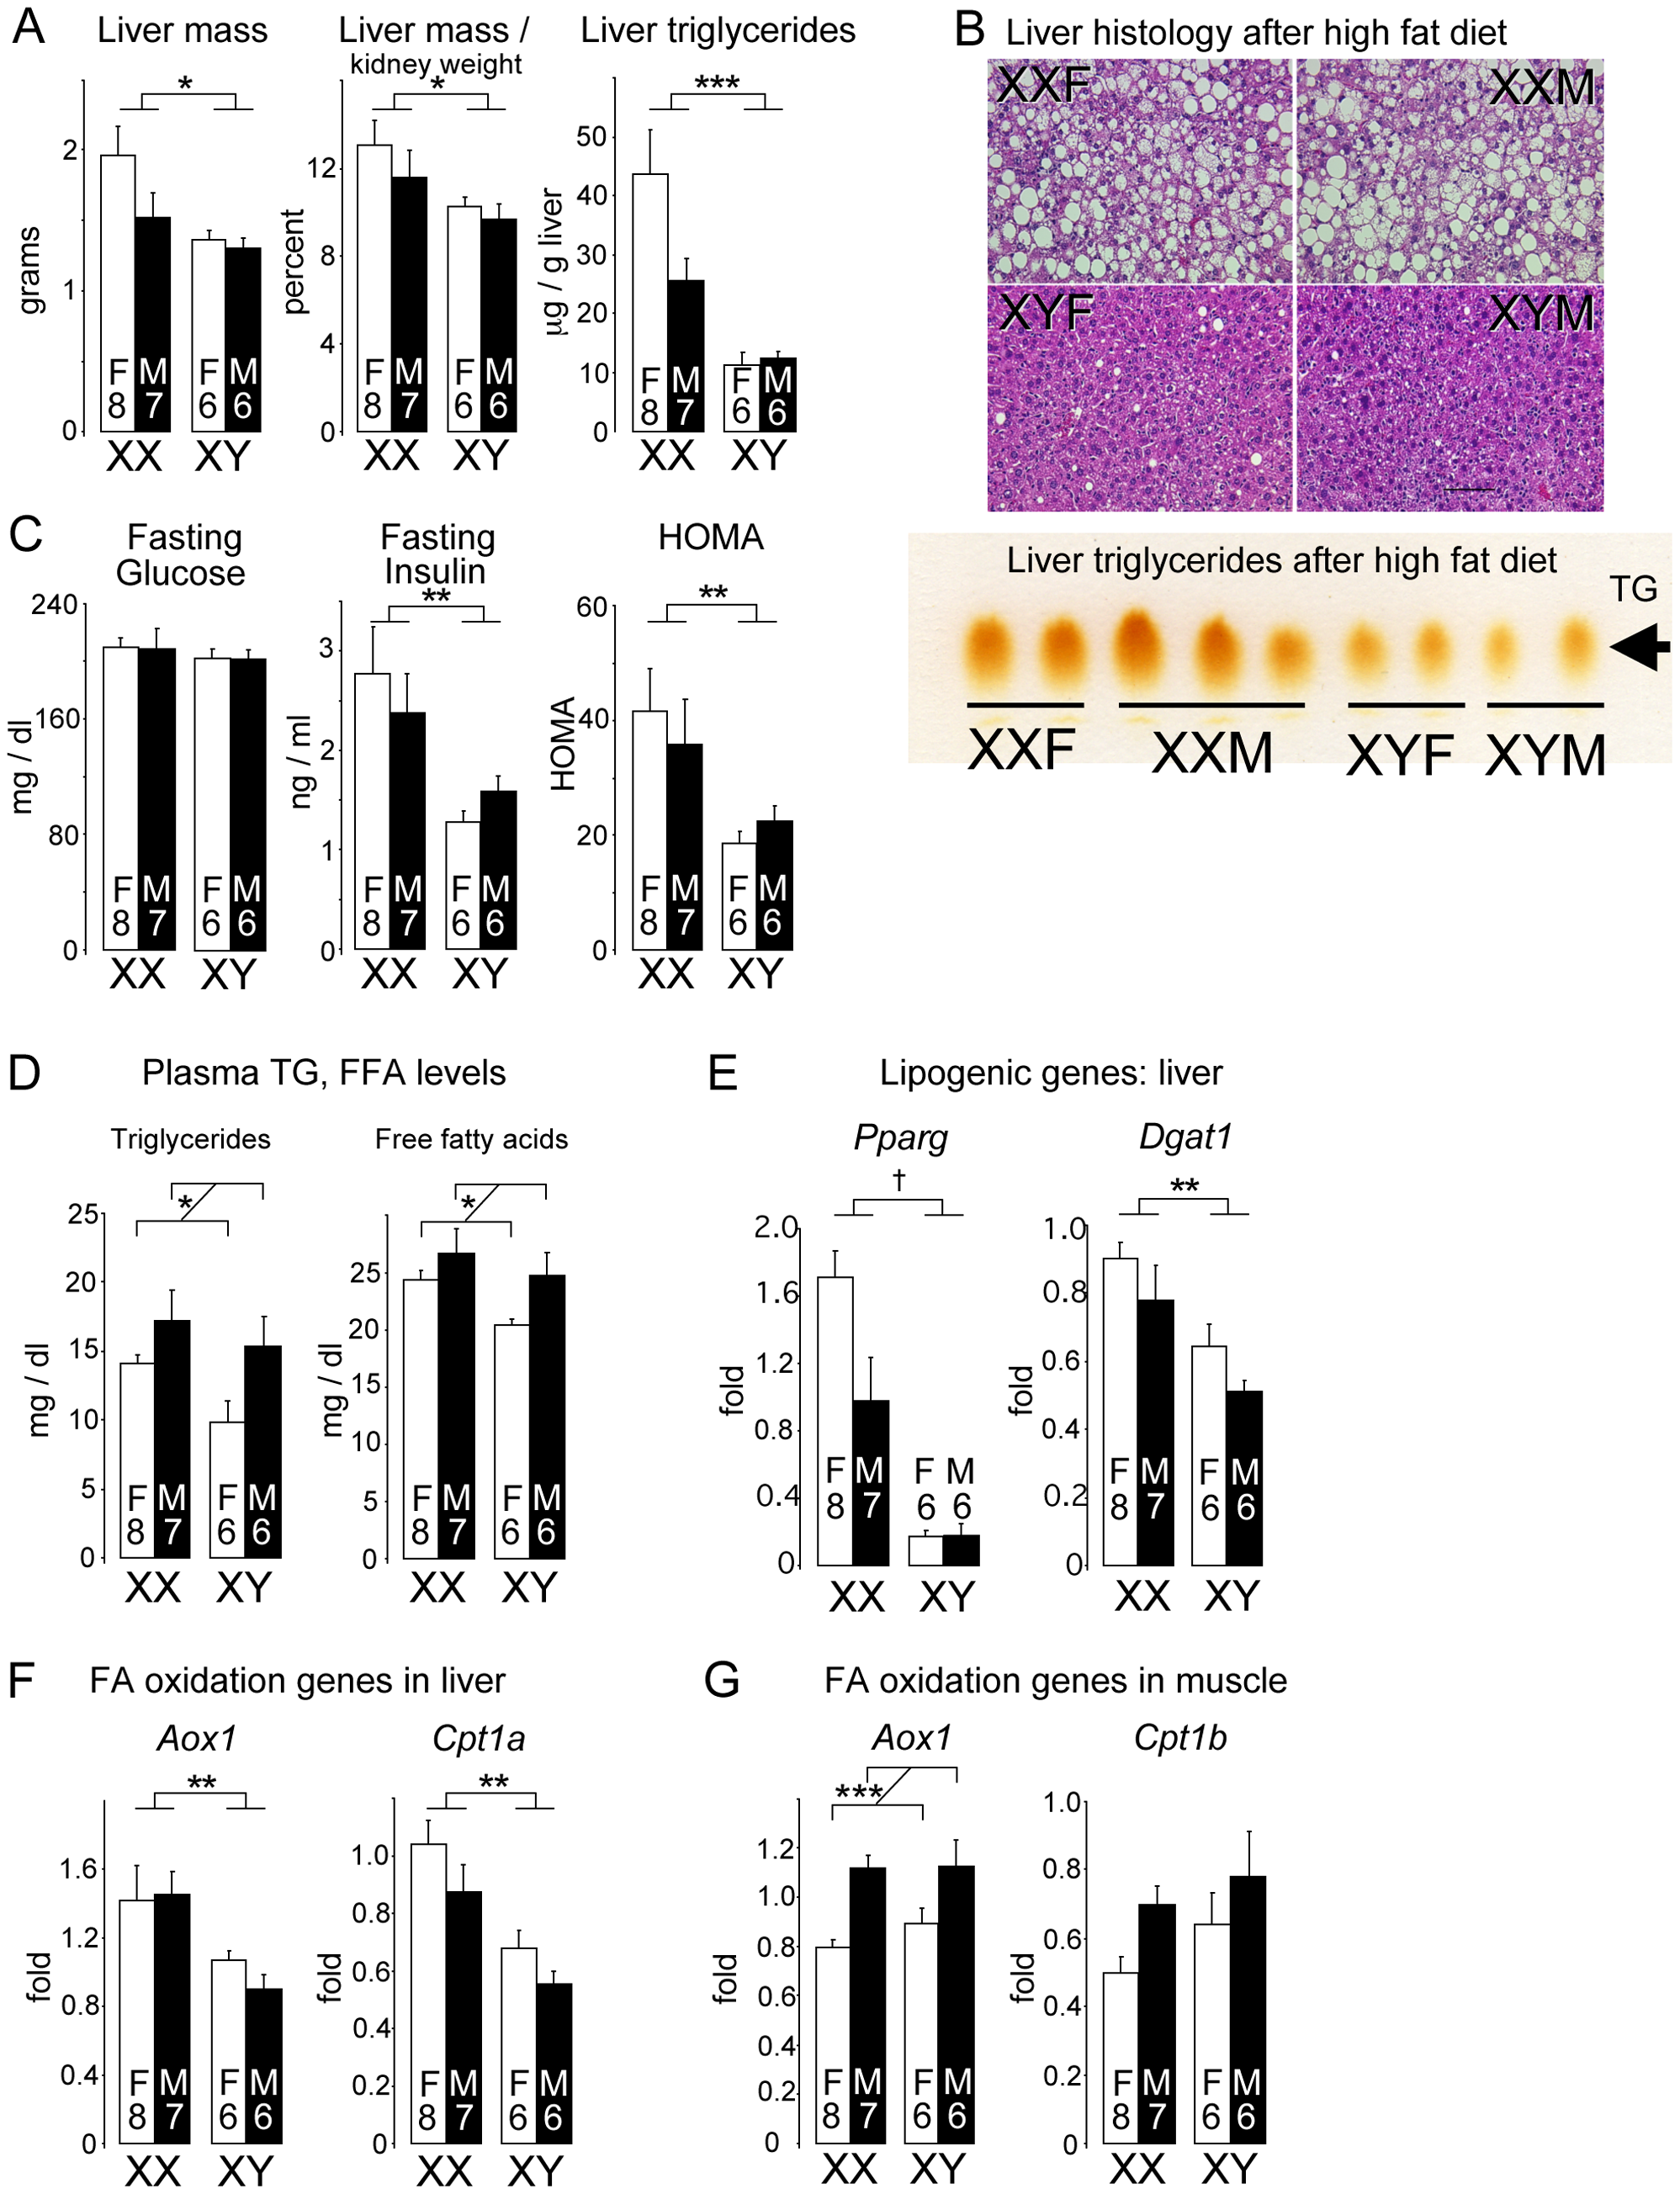 Diet-induced fatty liver and impaired glucose homeostasis are more pronounced in XX than XY mice.